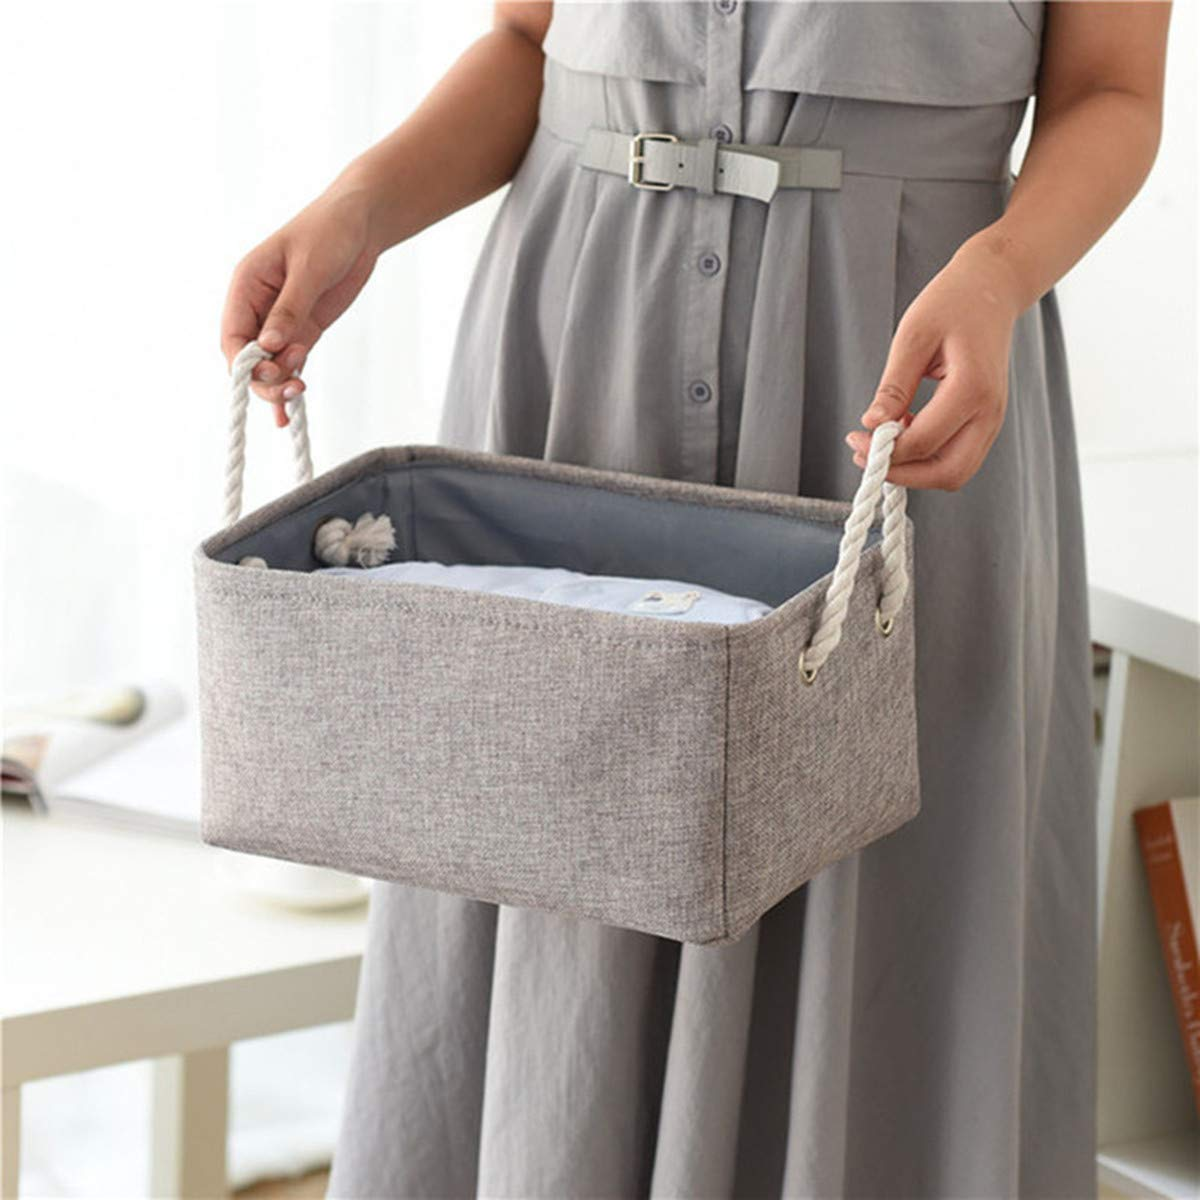 Basket Rope Storage Baskets, Flax Organizer Waterproof with Handles 12 x 8 x 5 Inches, Basket for Baby Blanket, Kids Toy Nursery Laundry Basket (Gray)